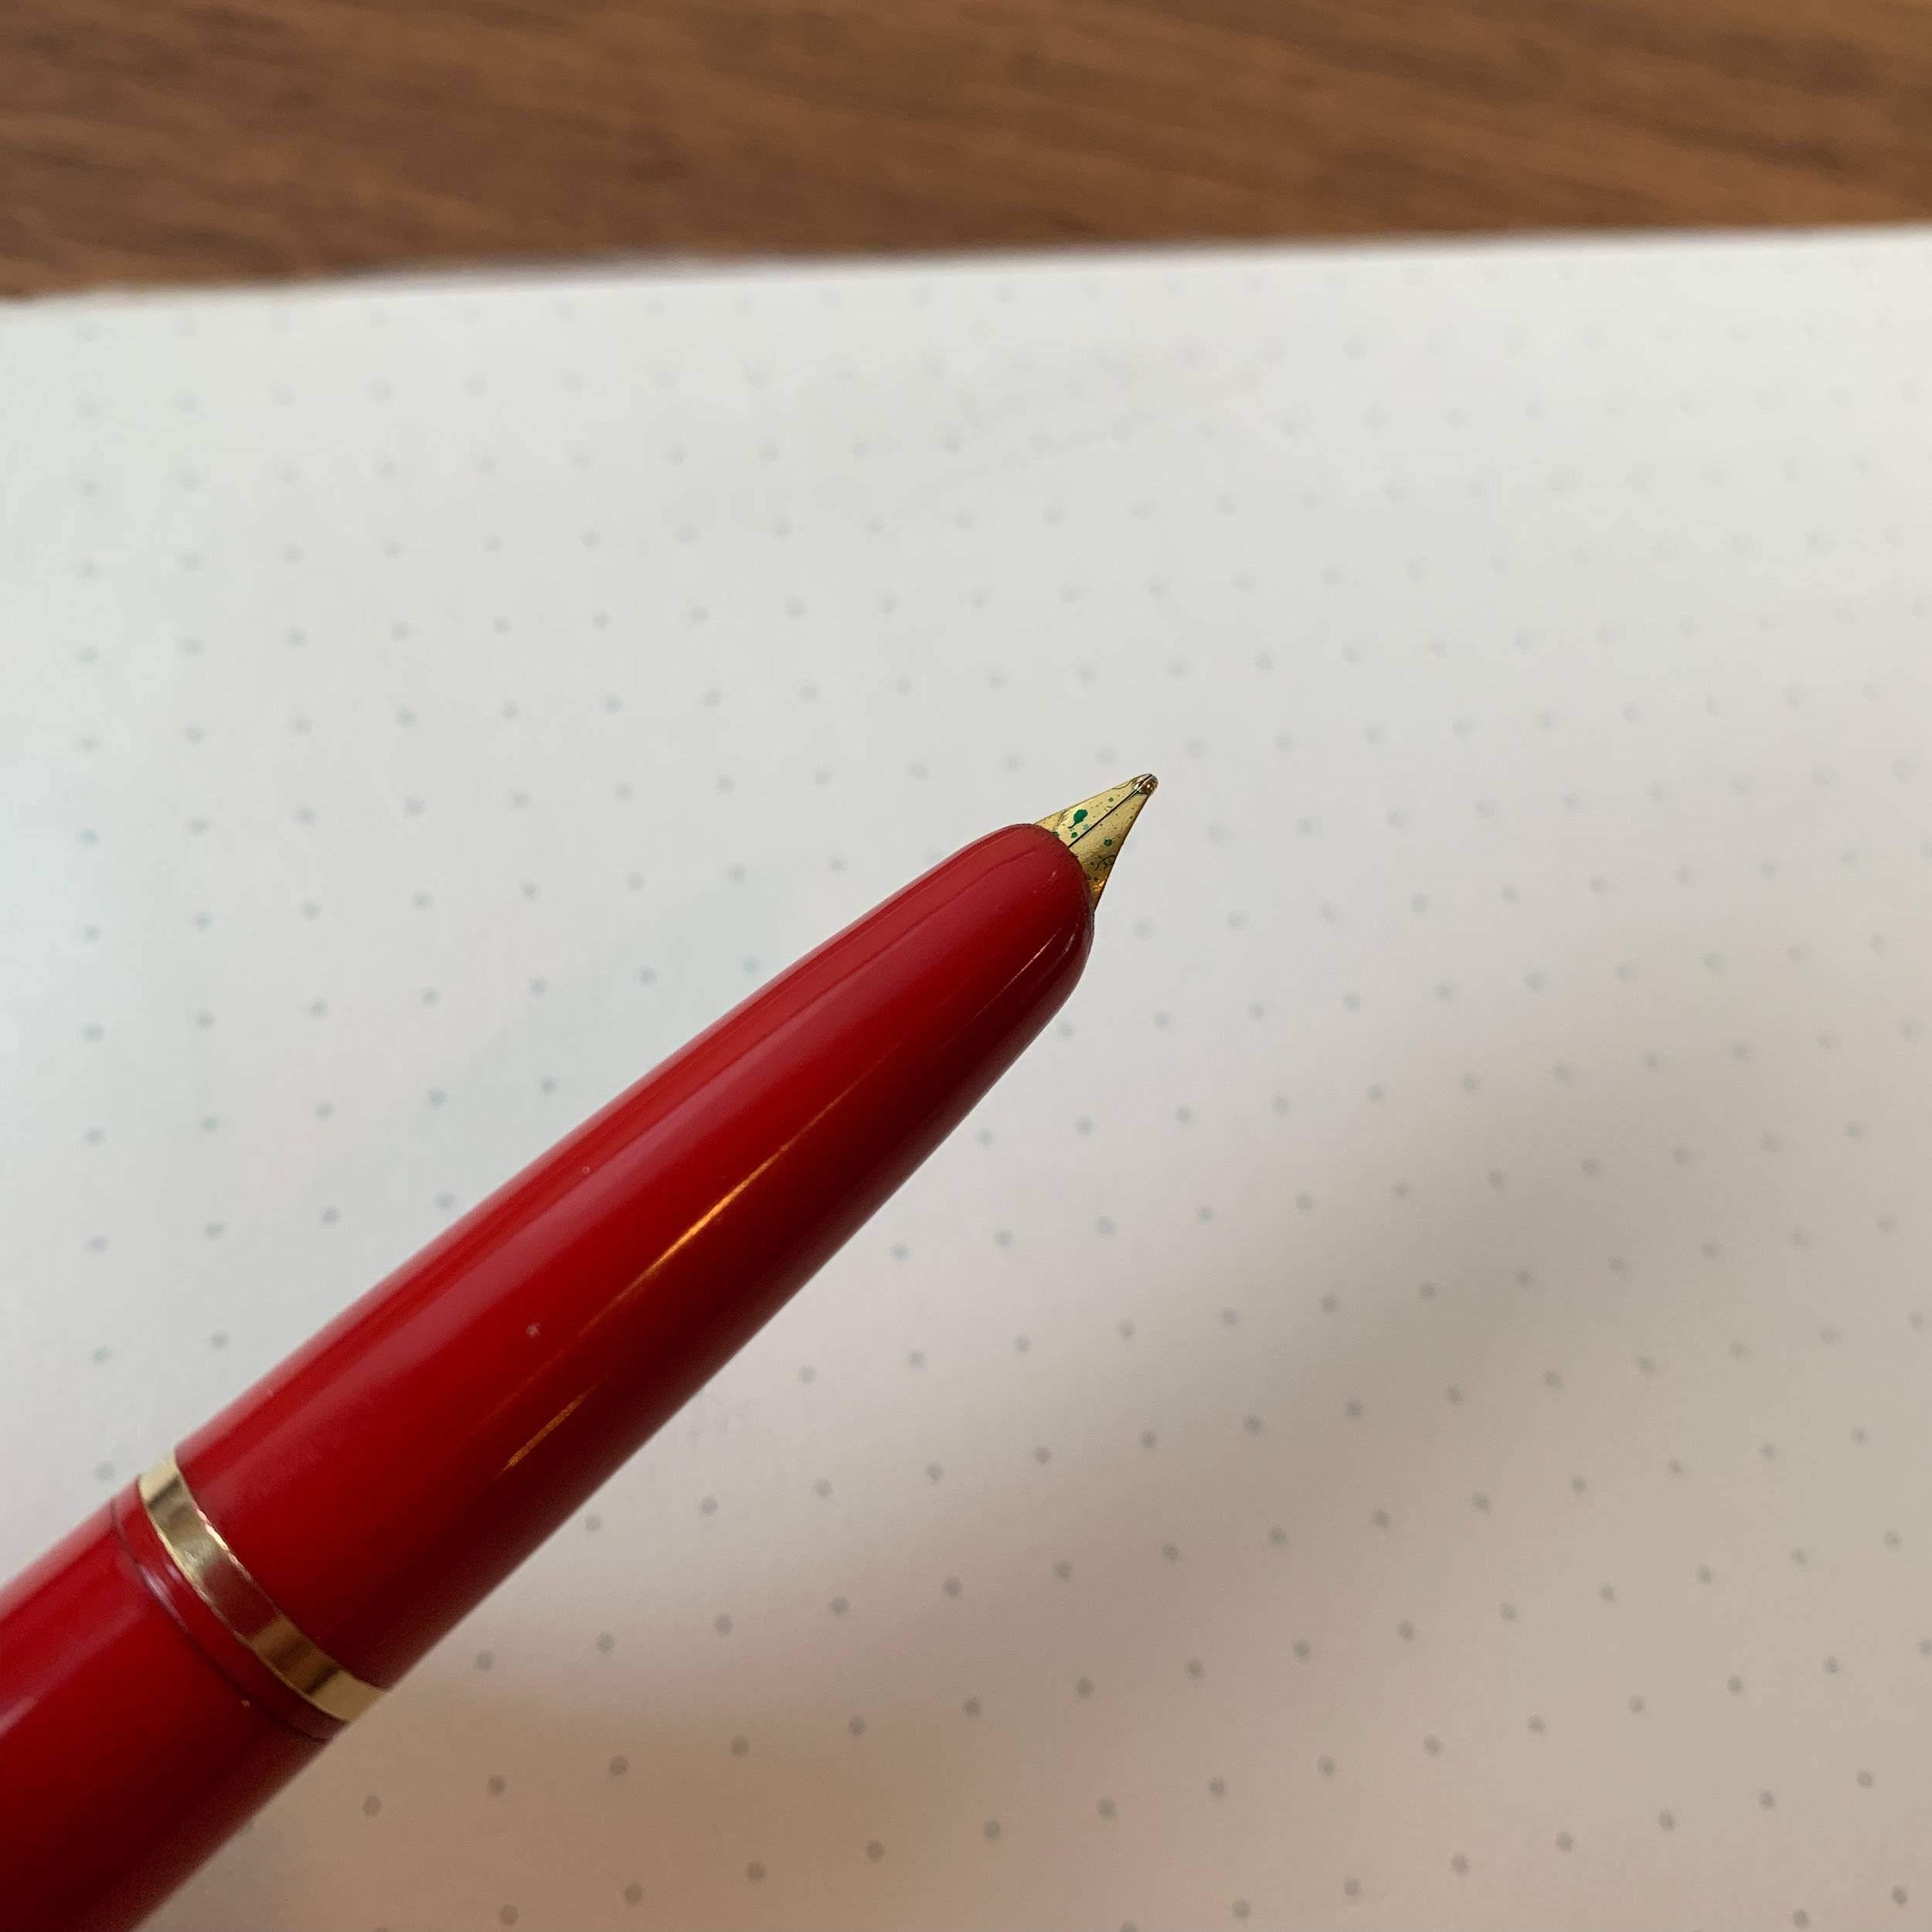 "I love hooded nibs! Even on relatively inexpensive pens, they seem to write well, and are very practical for those times when you'd prefer to use a pen that doesn't scream ""Fountain Pen!"", such as in a meeting."